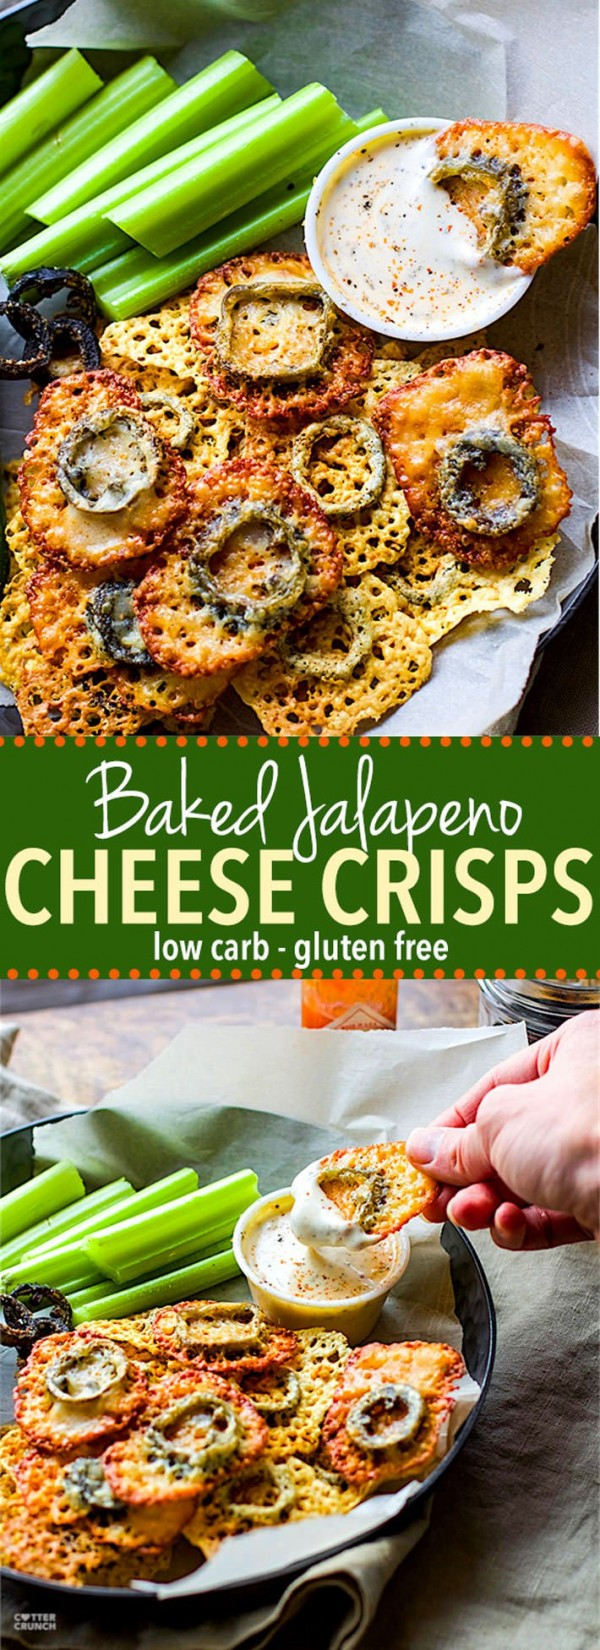 Get the recipe Baked Jalapeno Cheese Crisps @recipes_to_go